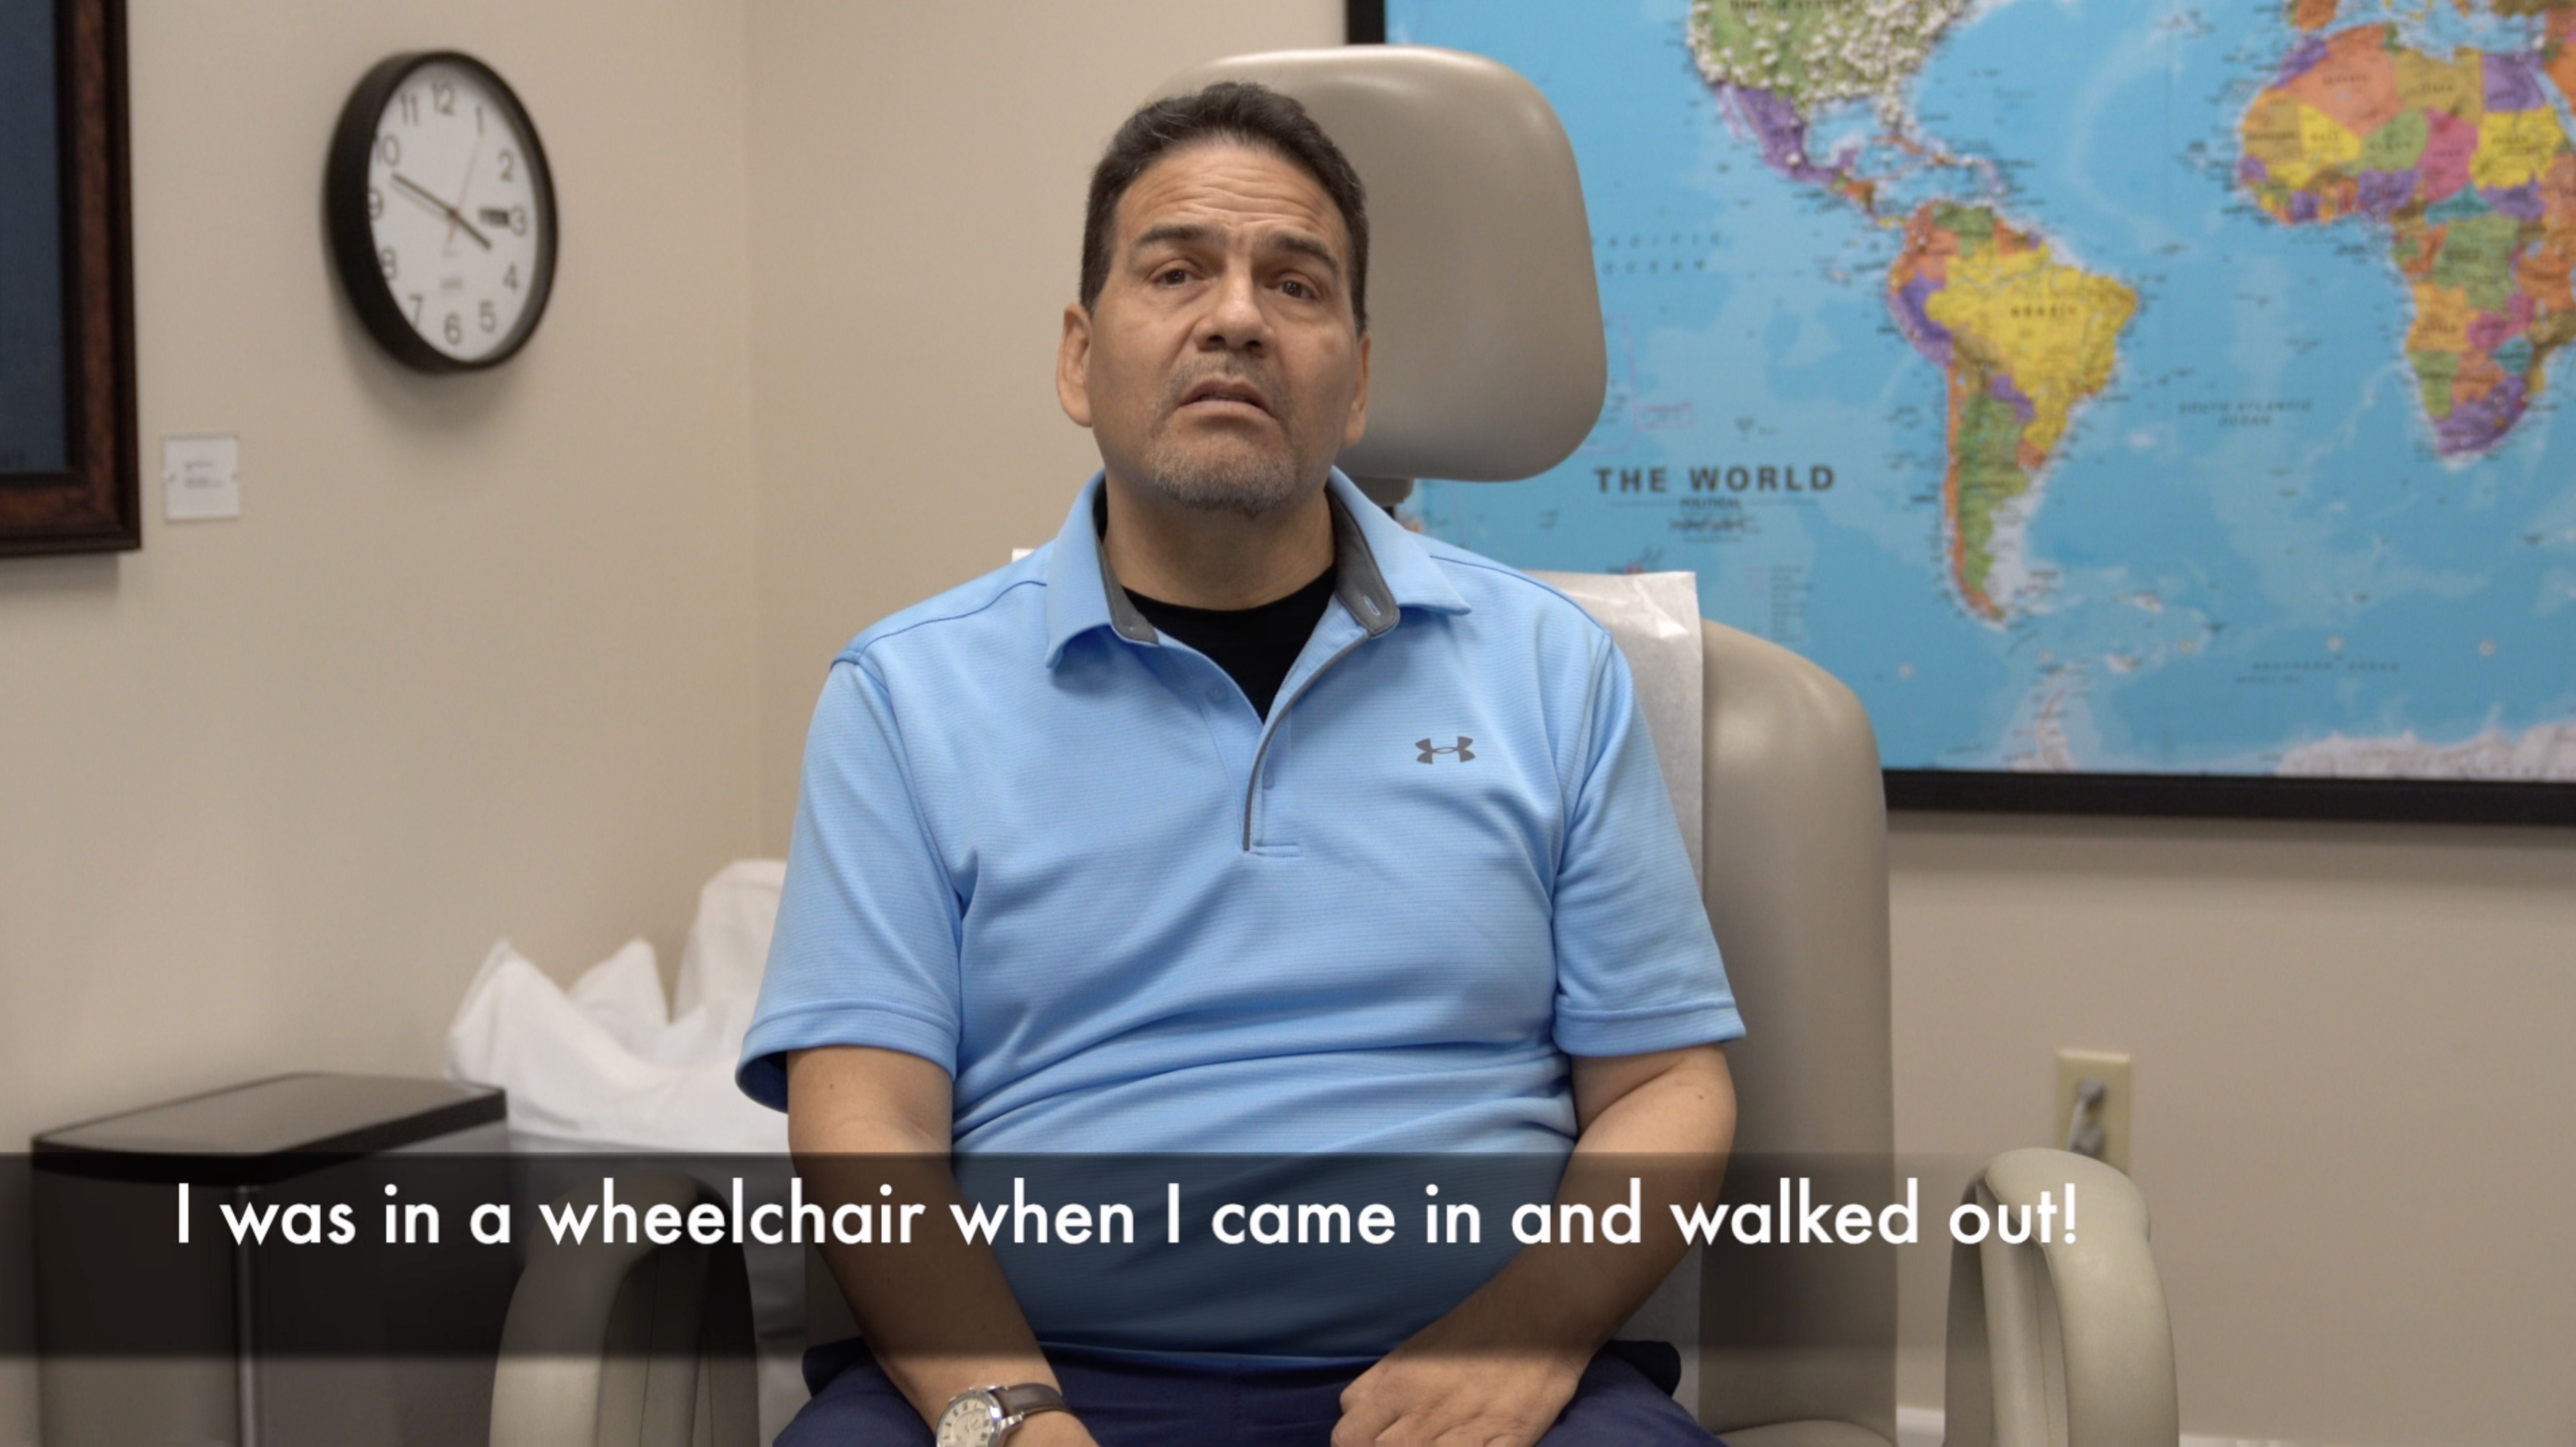 From wheelchair to walking unassisted after treatment by Edward Tobinick, M.D., 2 yrs after stroke